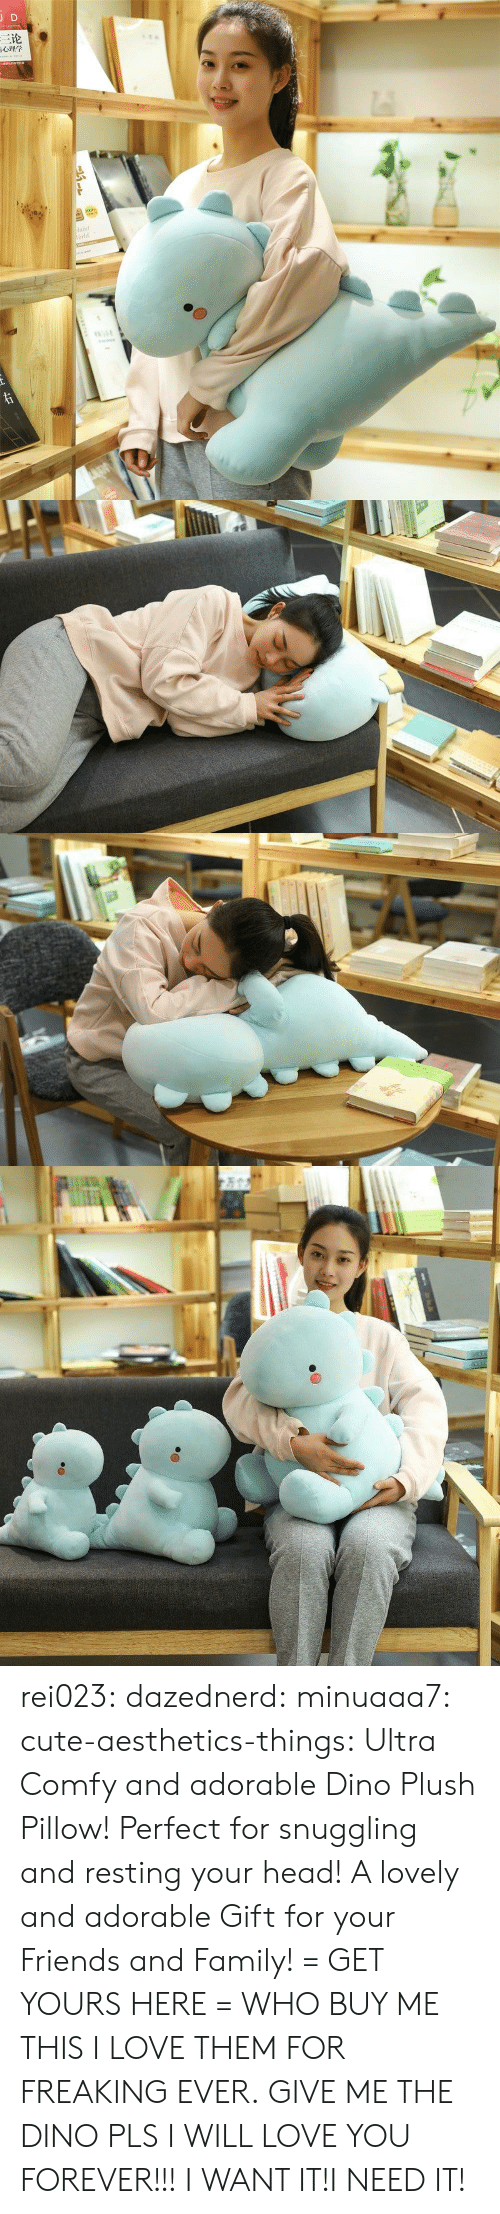 Resting: JD  三论  laint  orld  TNAR  ww.e rei023: dazednerd:  minuaaa7:   cute-aesthetics-things:  Ultra Comfy and adorable Dino Plush Pillow! Perfect for snuggling and resting your head! A lovely and adorable Gift for your Friends and Family! = GET YOURS HERE =  WHO BUY ME THIS I LOVE THEM FOR FREAKING EVER.   GIVE ME THE DINO PLS I WILL LOVE YOU FOREVER!!!  I WANT IT!I NEED IT!